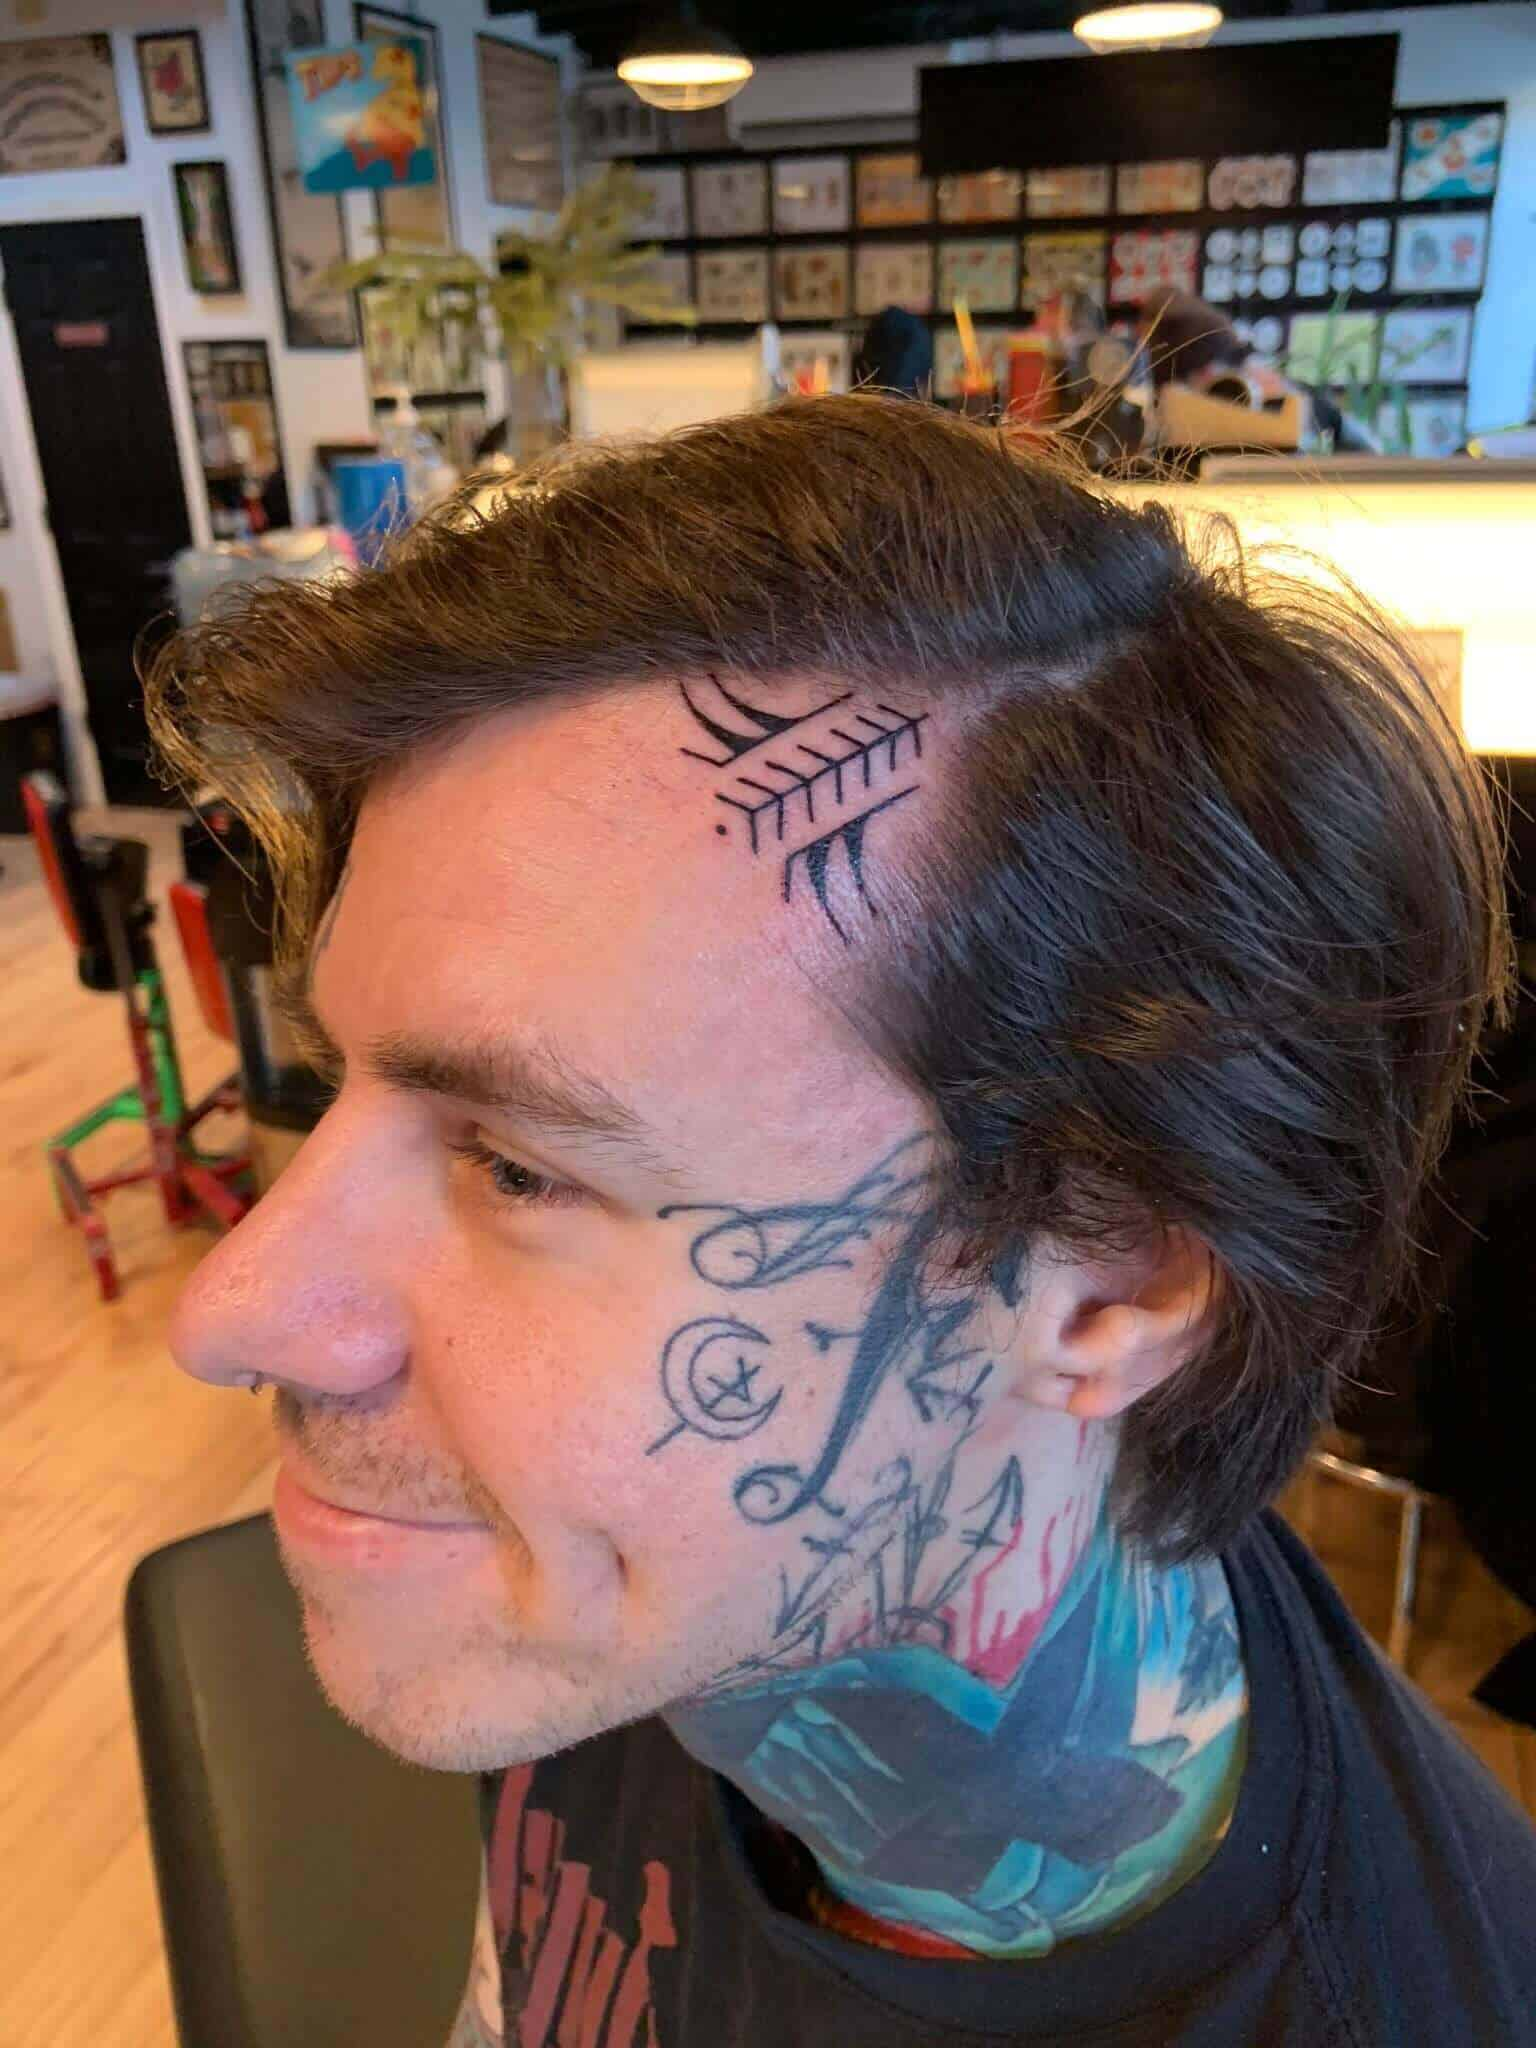 shayne smith hairline tattoo